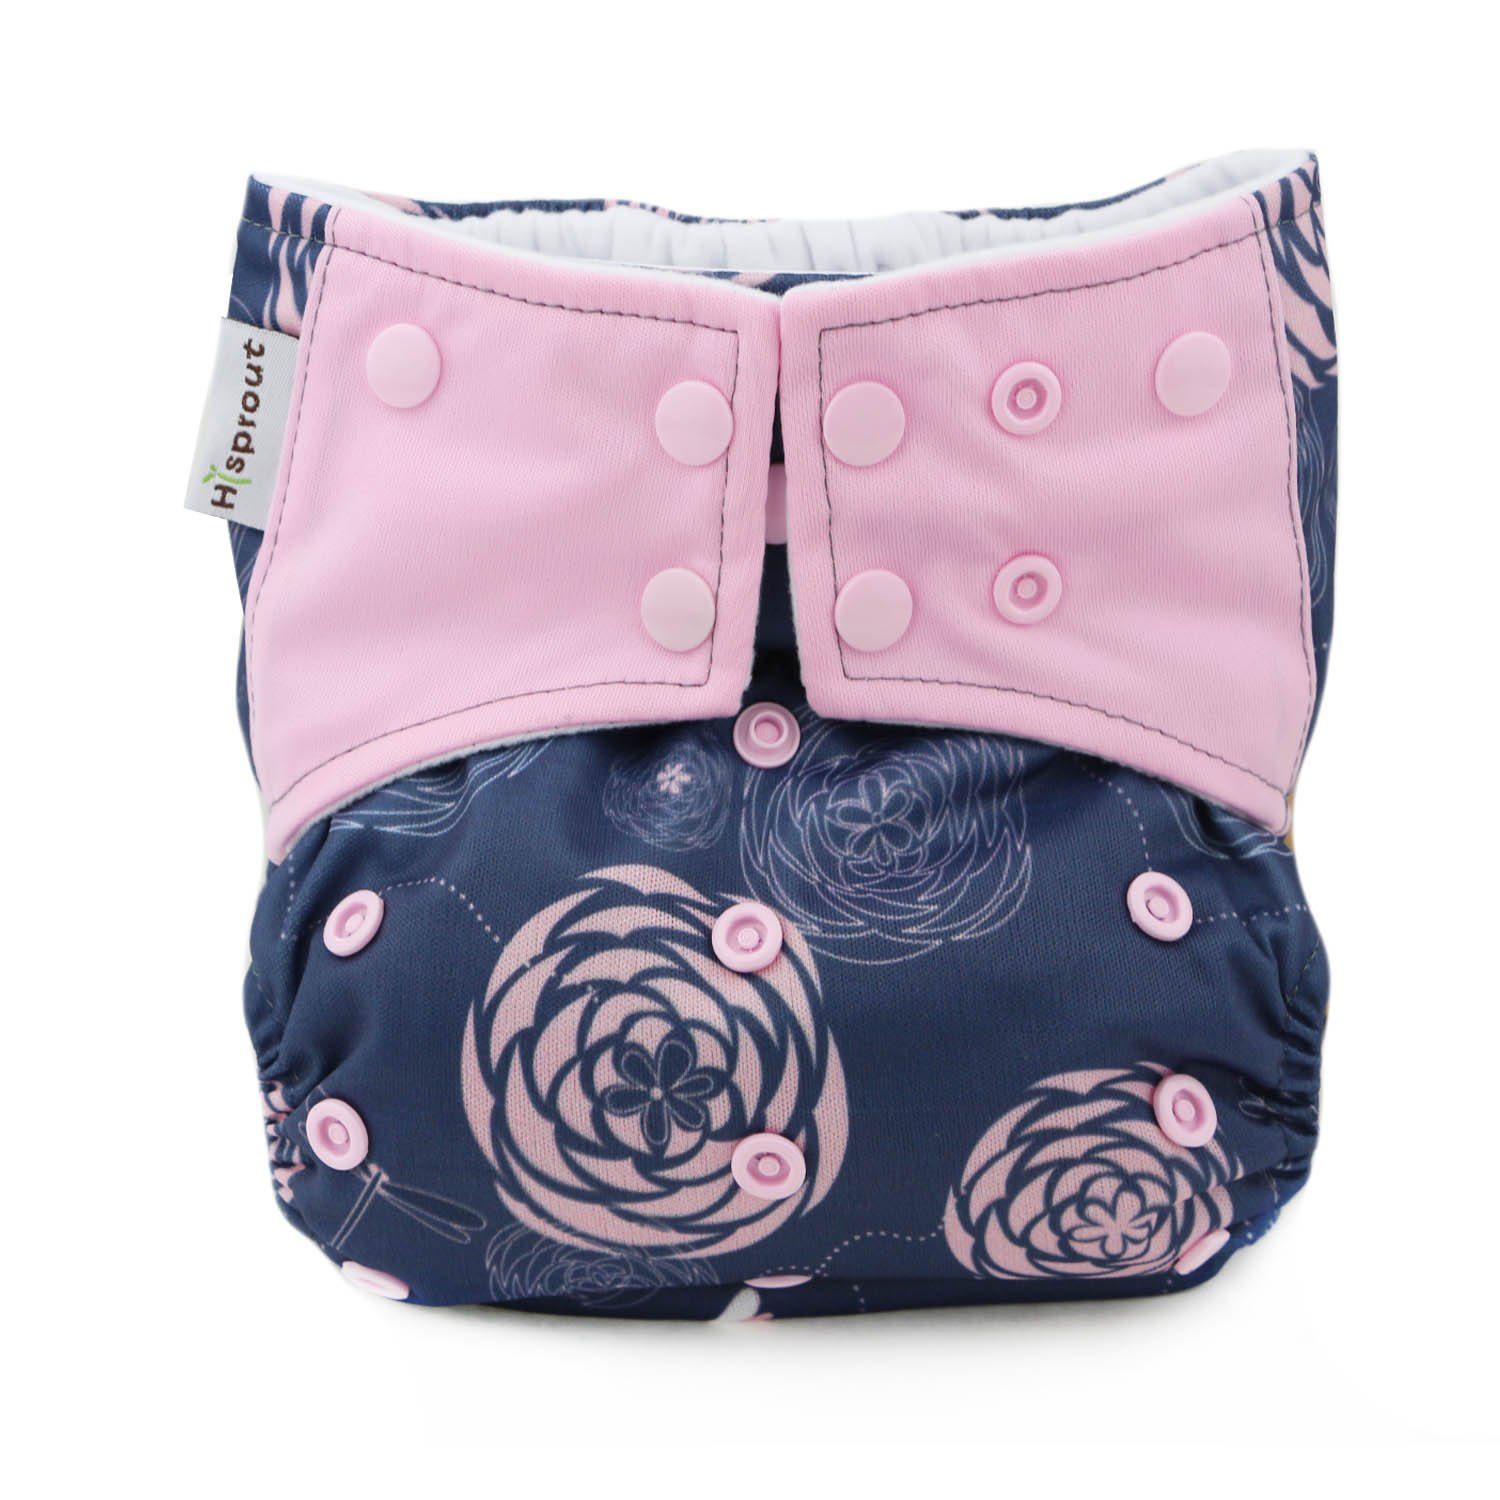 Hi Sprout One Size Adjustable Washable Reusable Pocket Cloth Diapers for Baby Girls and Boys,Dream Dragonfly